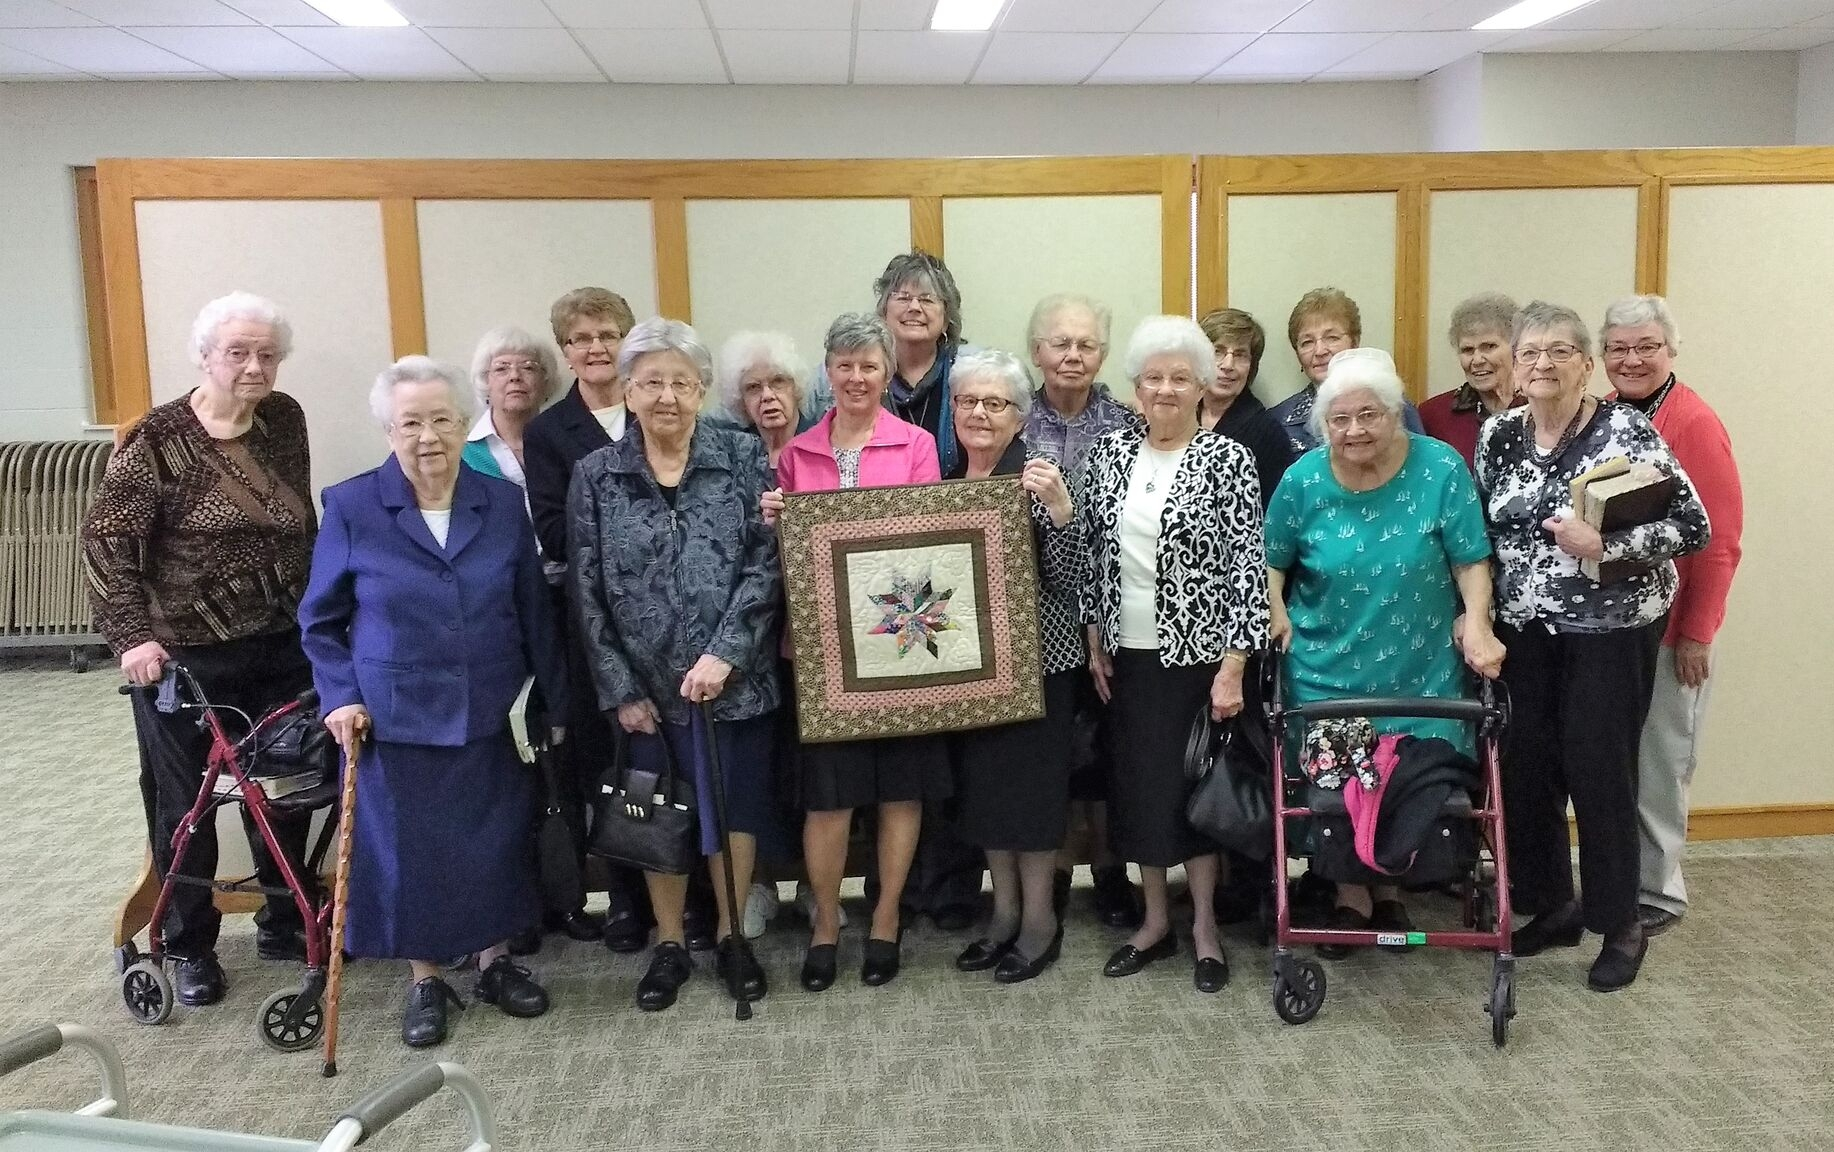 Mennonite Ladies Group Photo.jpg